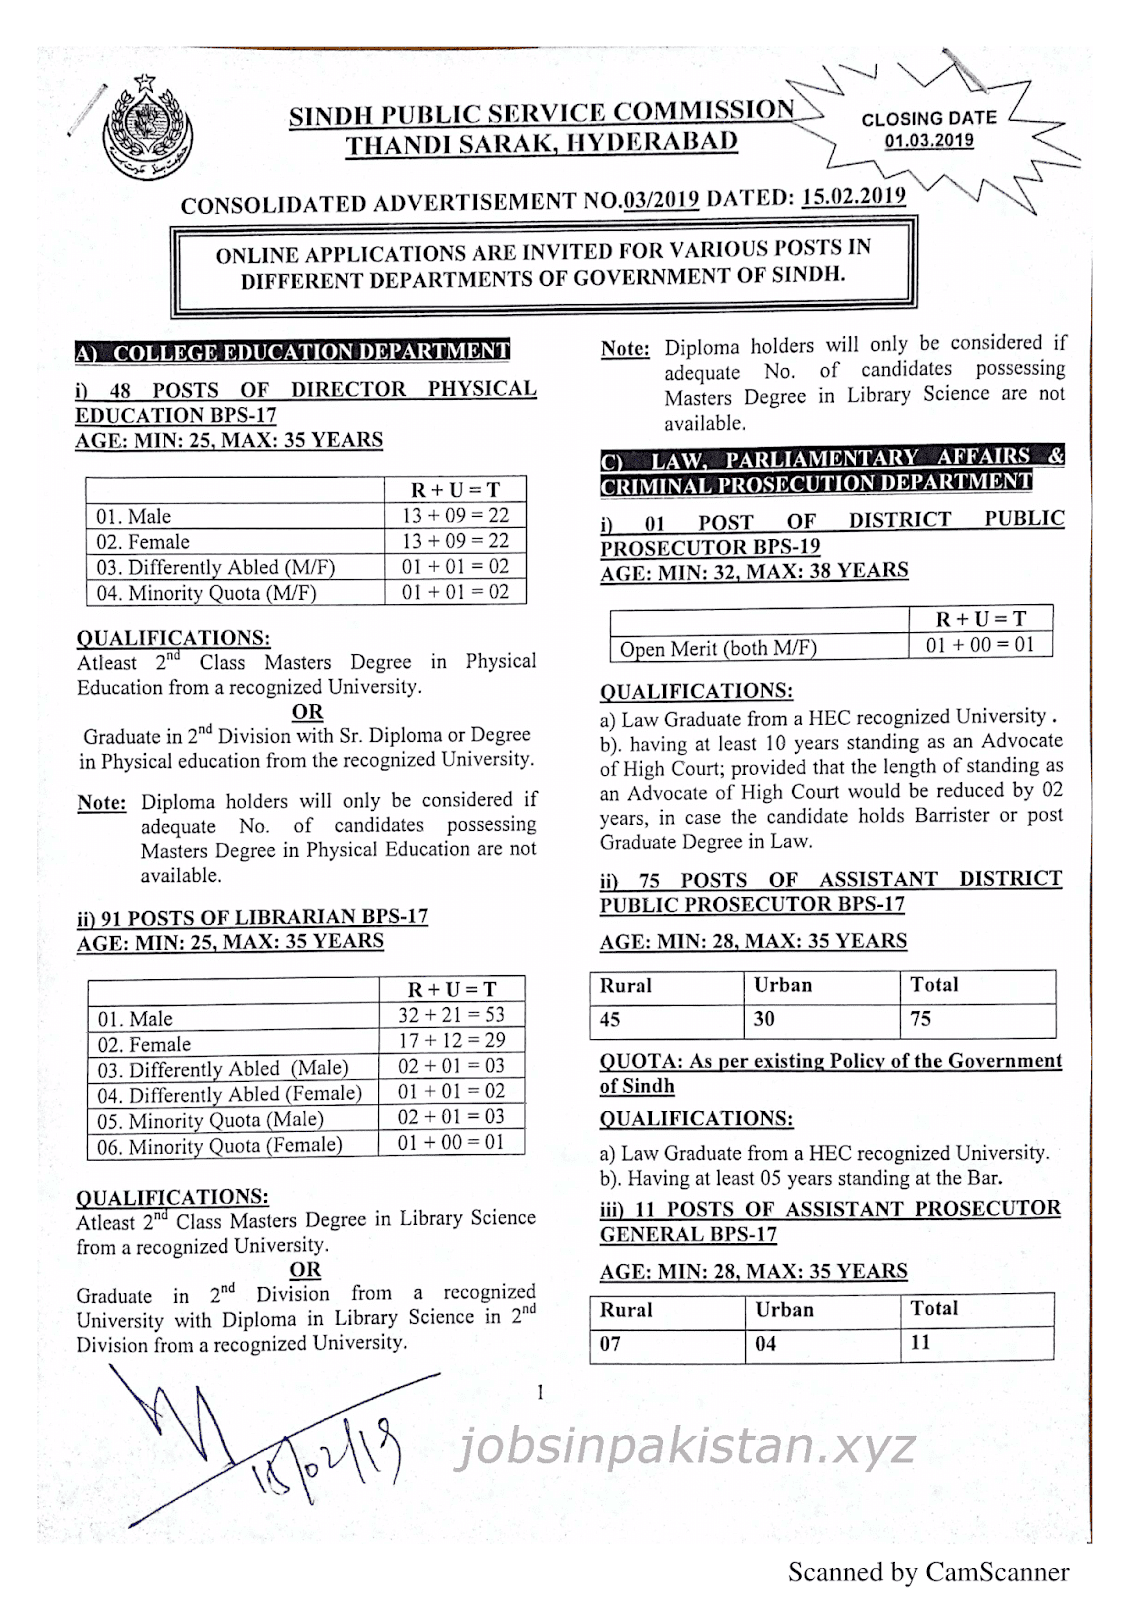 SPSC Advertisement 03/2019 Page No. 1/3